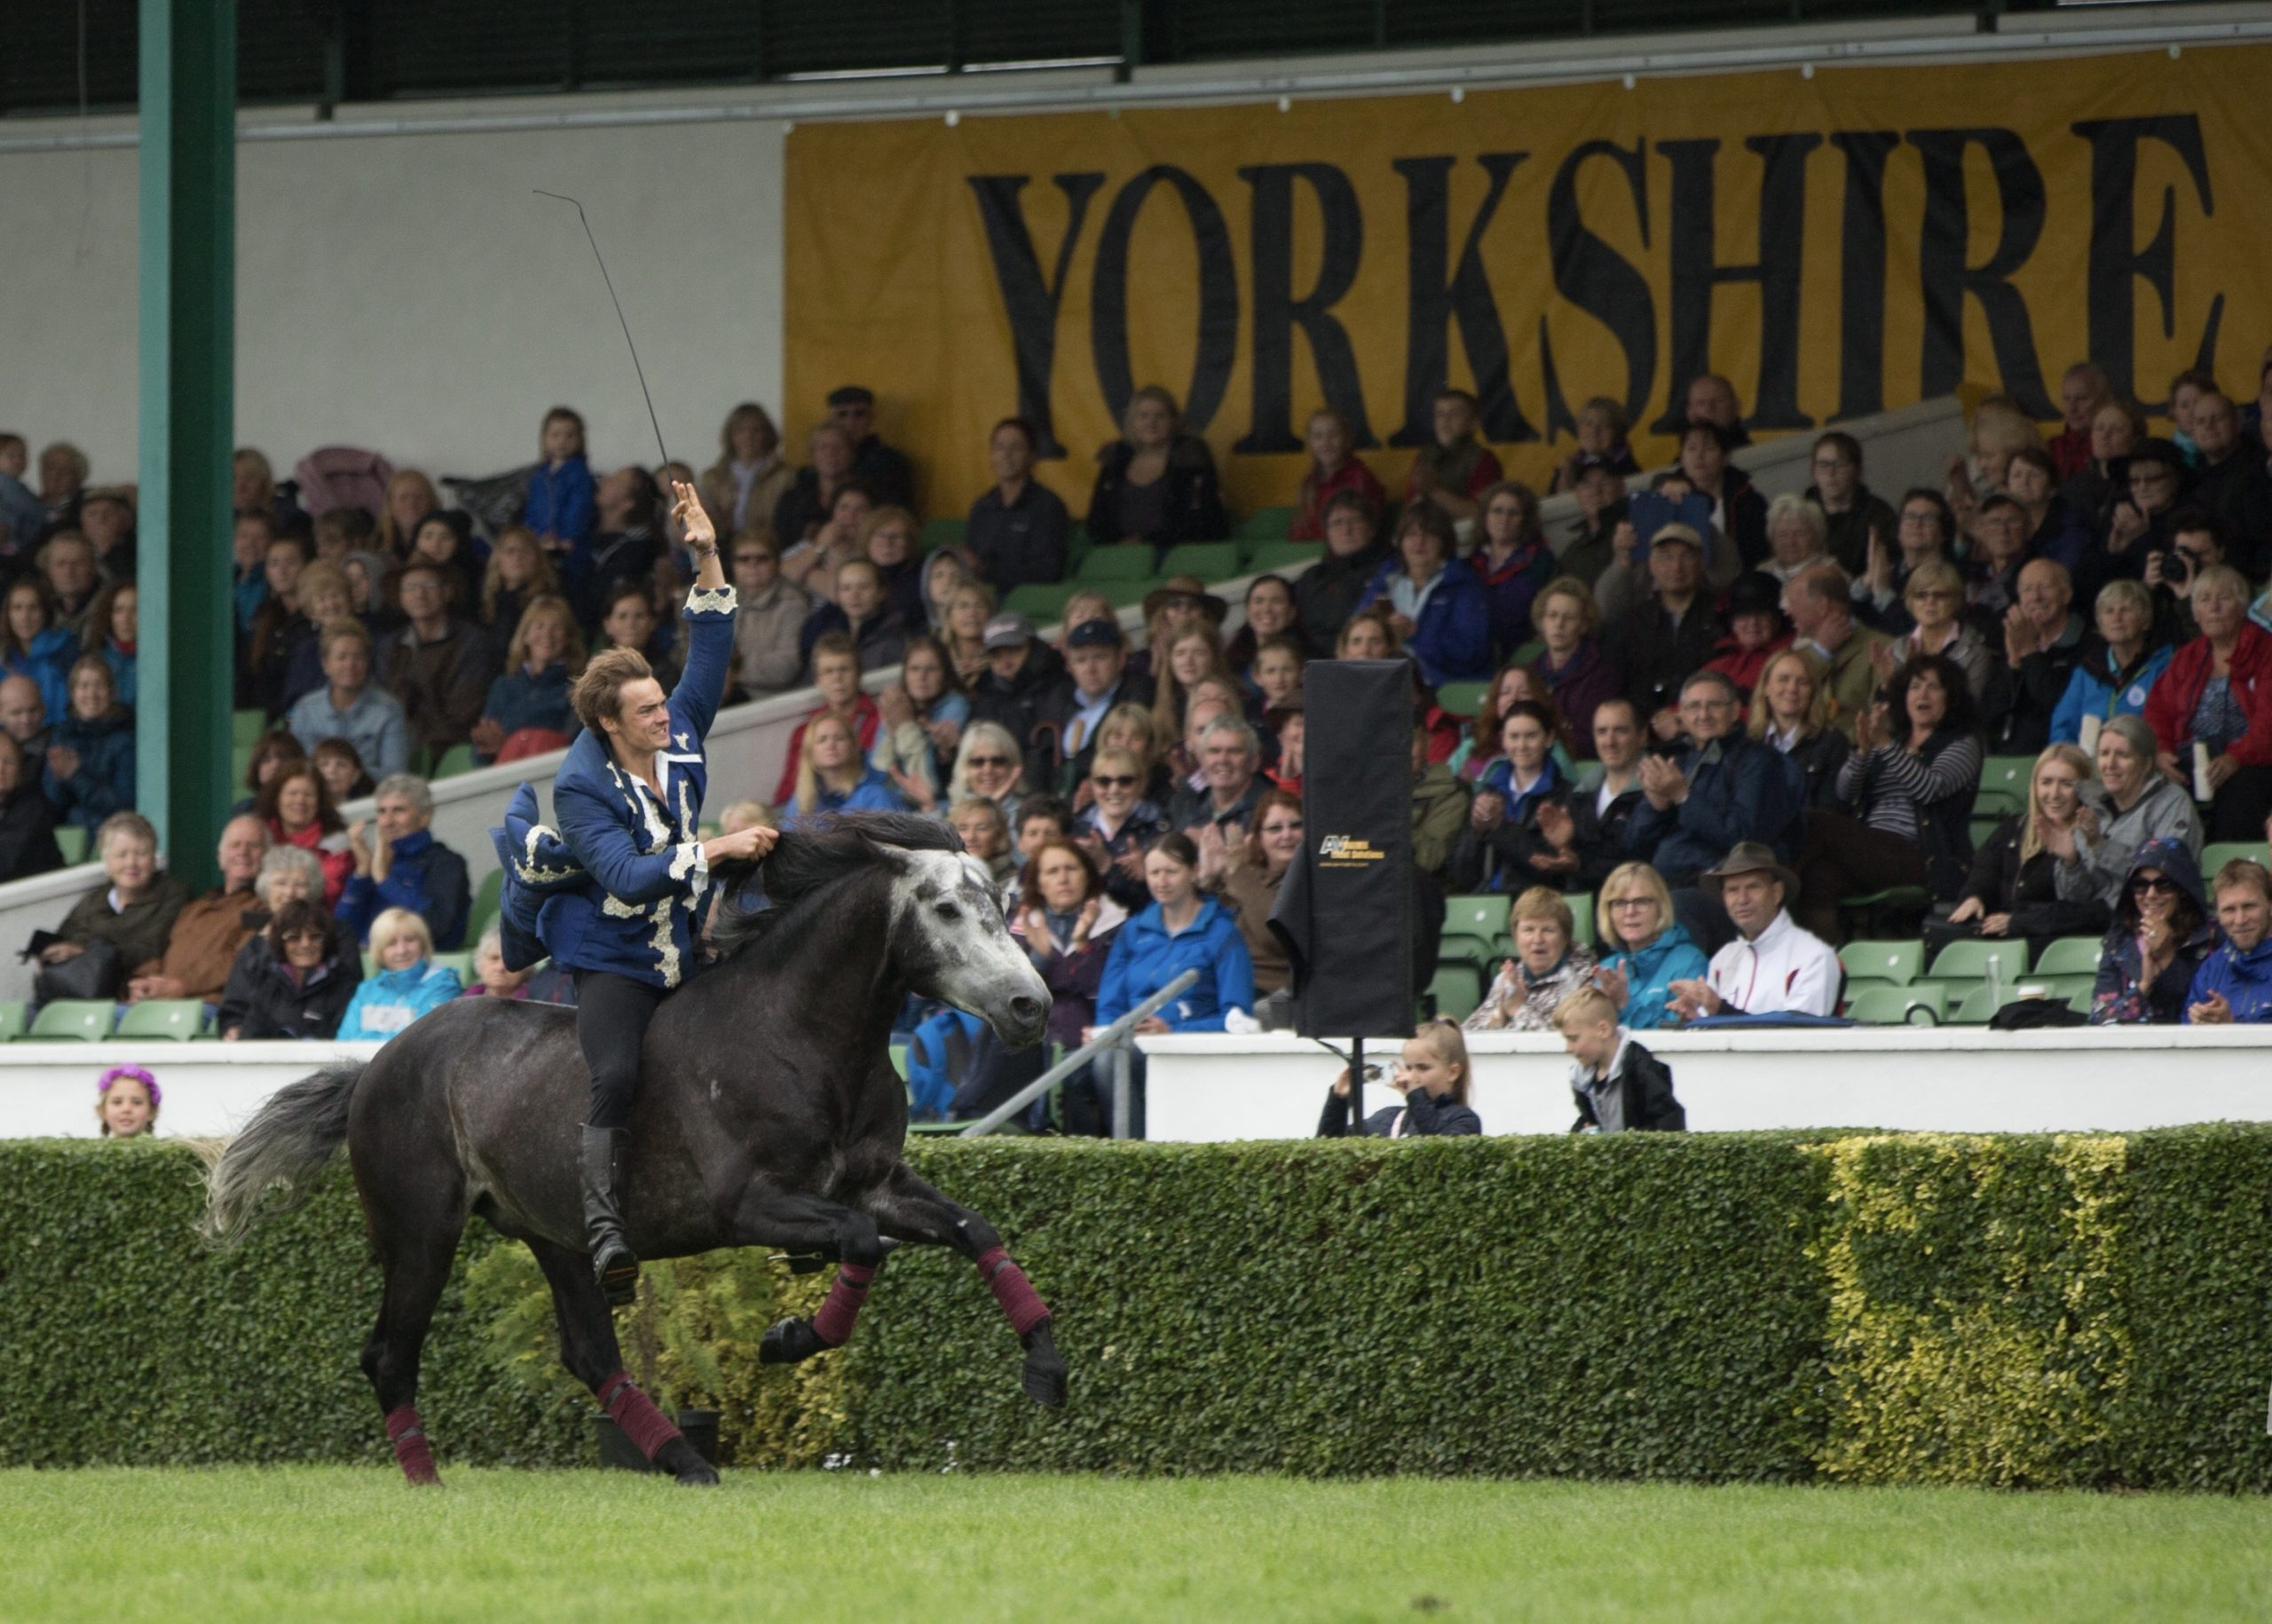 GREAT YORKSHIRE SHOW GOES VIRTUAL FOR THE FIRST TIME